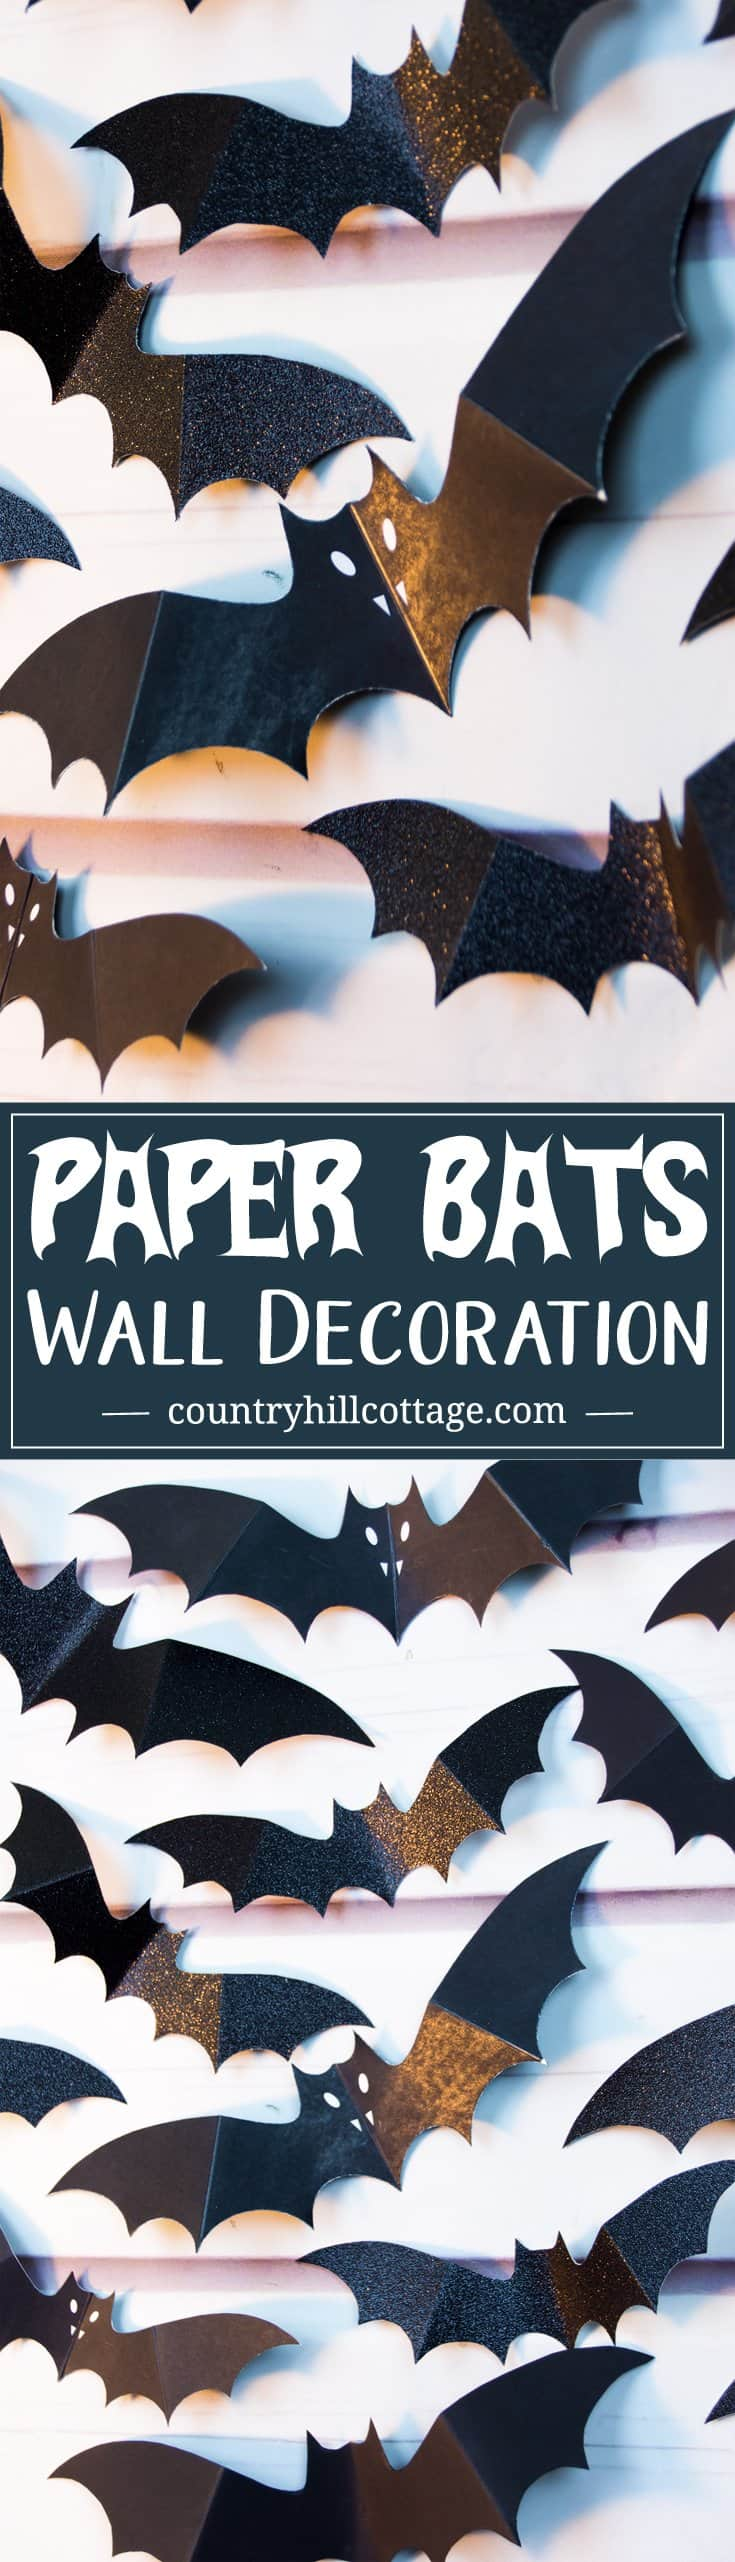 Swarm Of Paper Bats Diy Halloween Wall Decoration. Visit Our Blog To  Download A Free